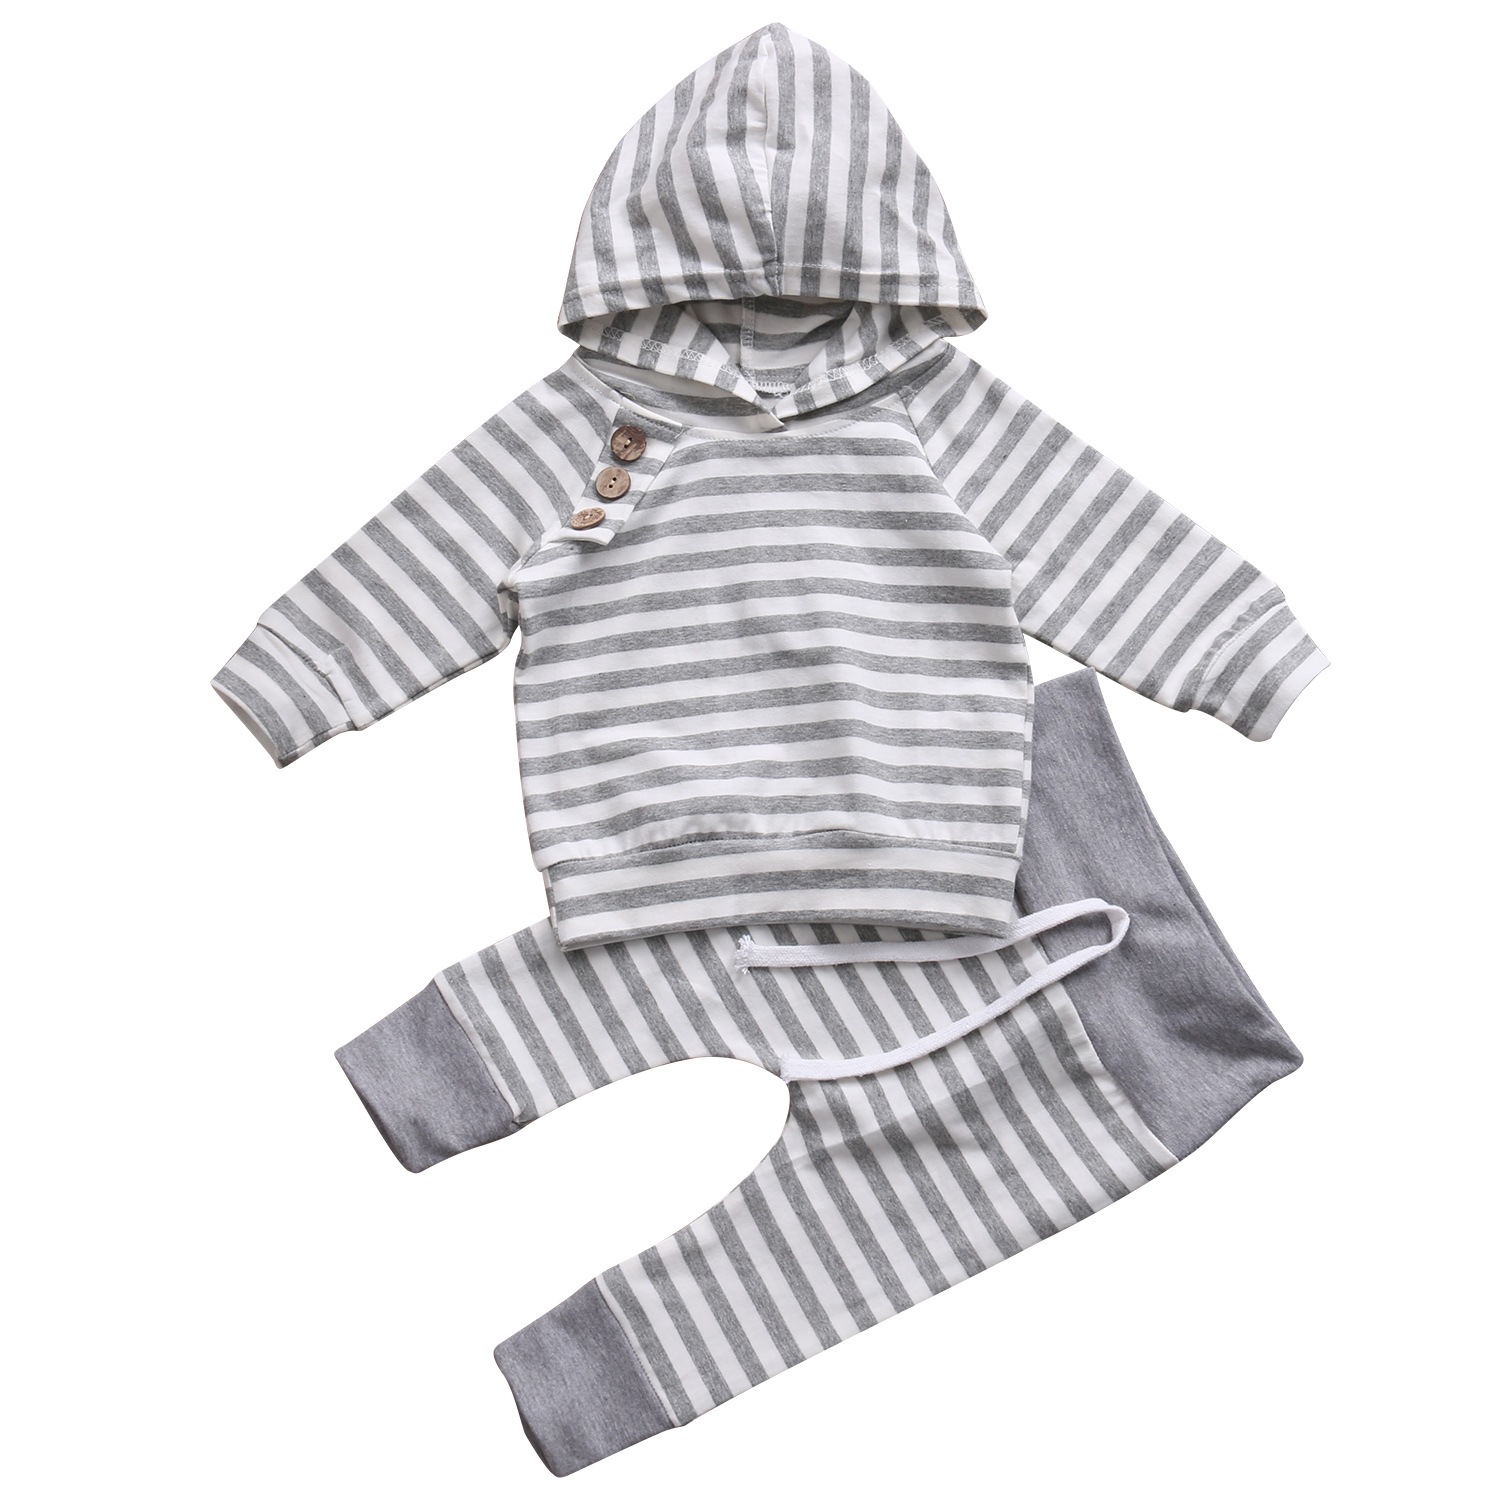 Toddler Newborn Infant Kids Baby Boy Girl Hoodie Tops Long Sleeve Shirt Pants Striped Outfit 2Pcs Set Clothes 2Pcs Set humor bear 2017 3pcs newborn infant baby boy clothes tops long sleeve shirt pants boy set baby boy clothes children clothes